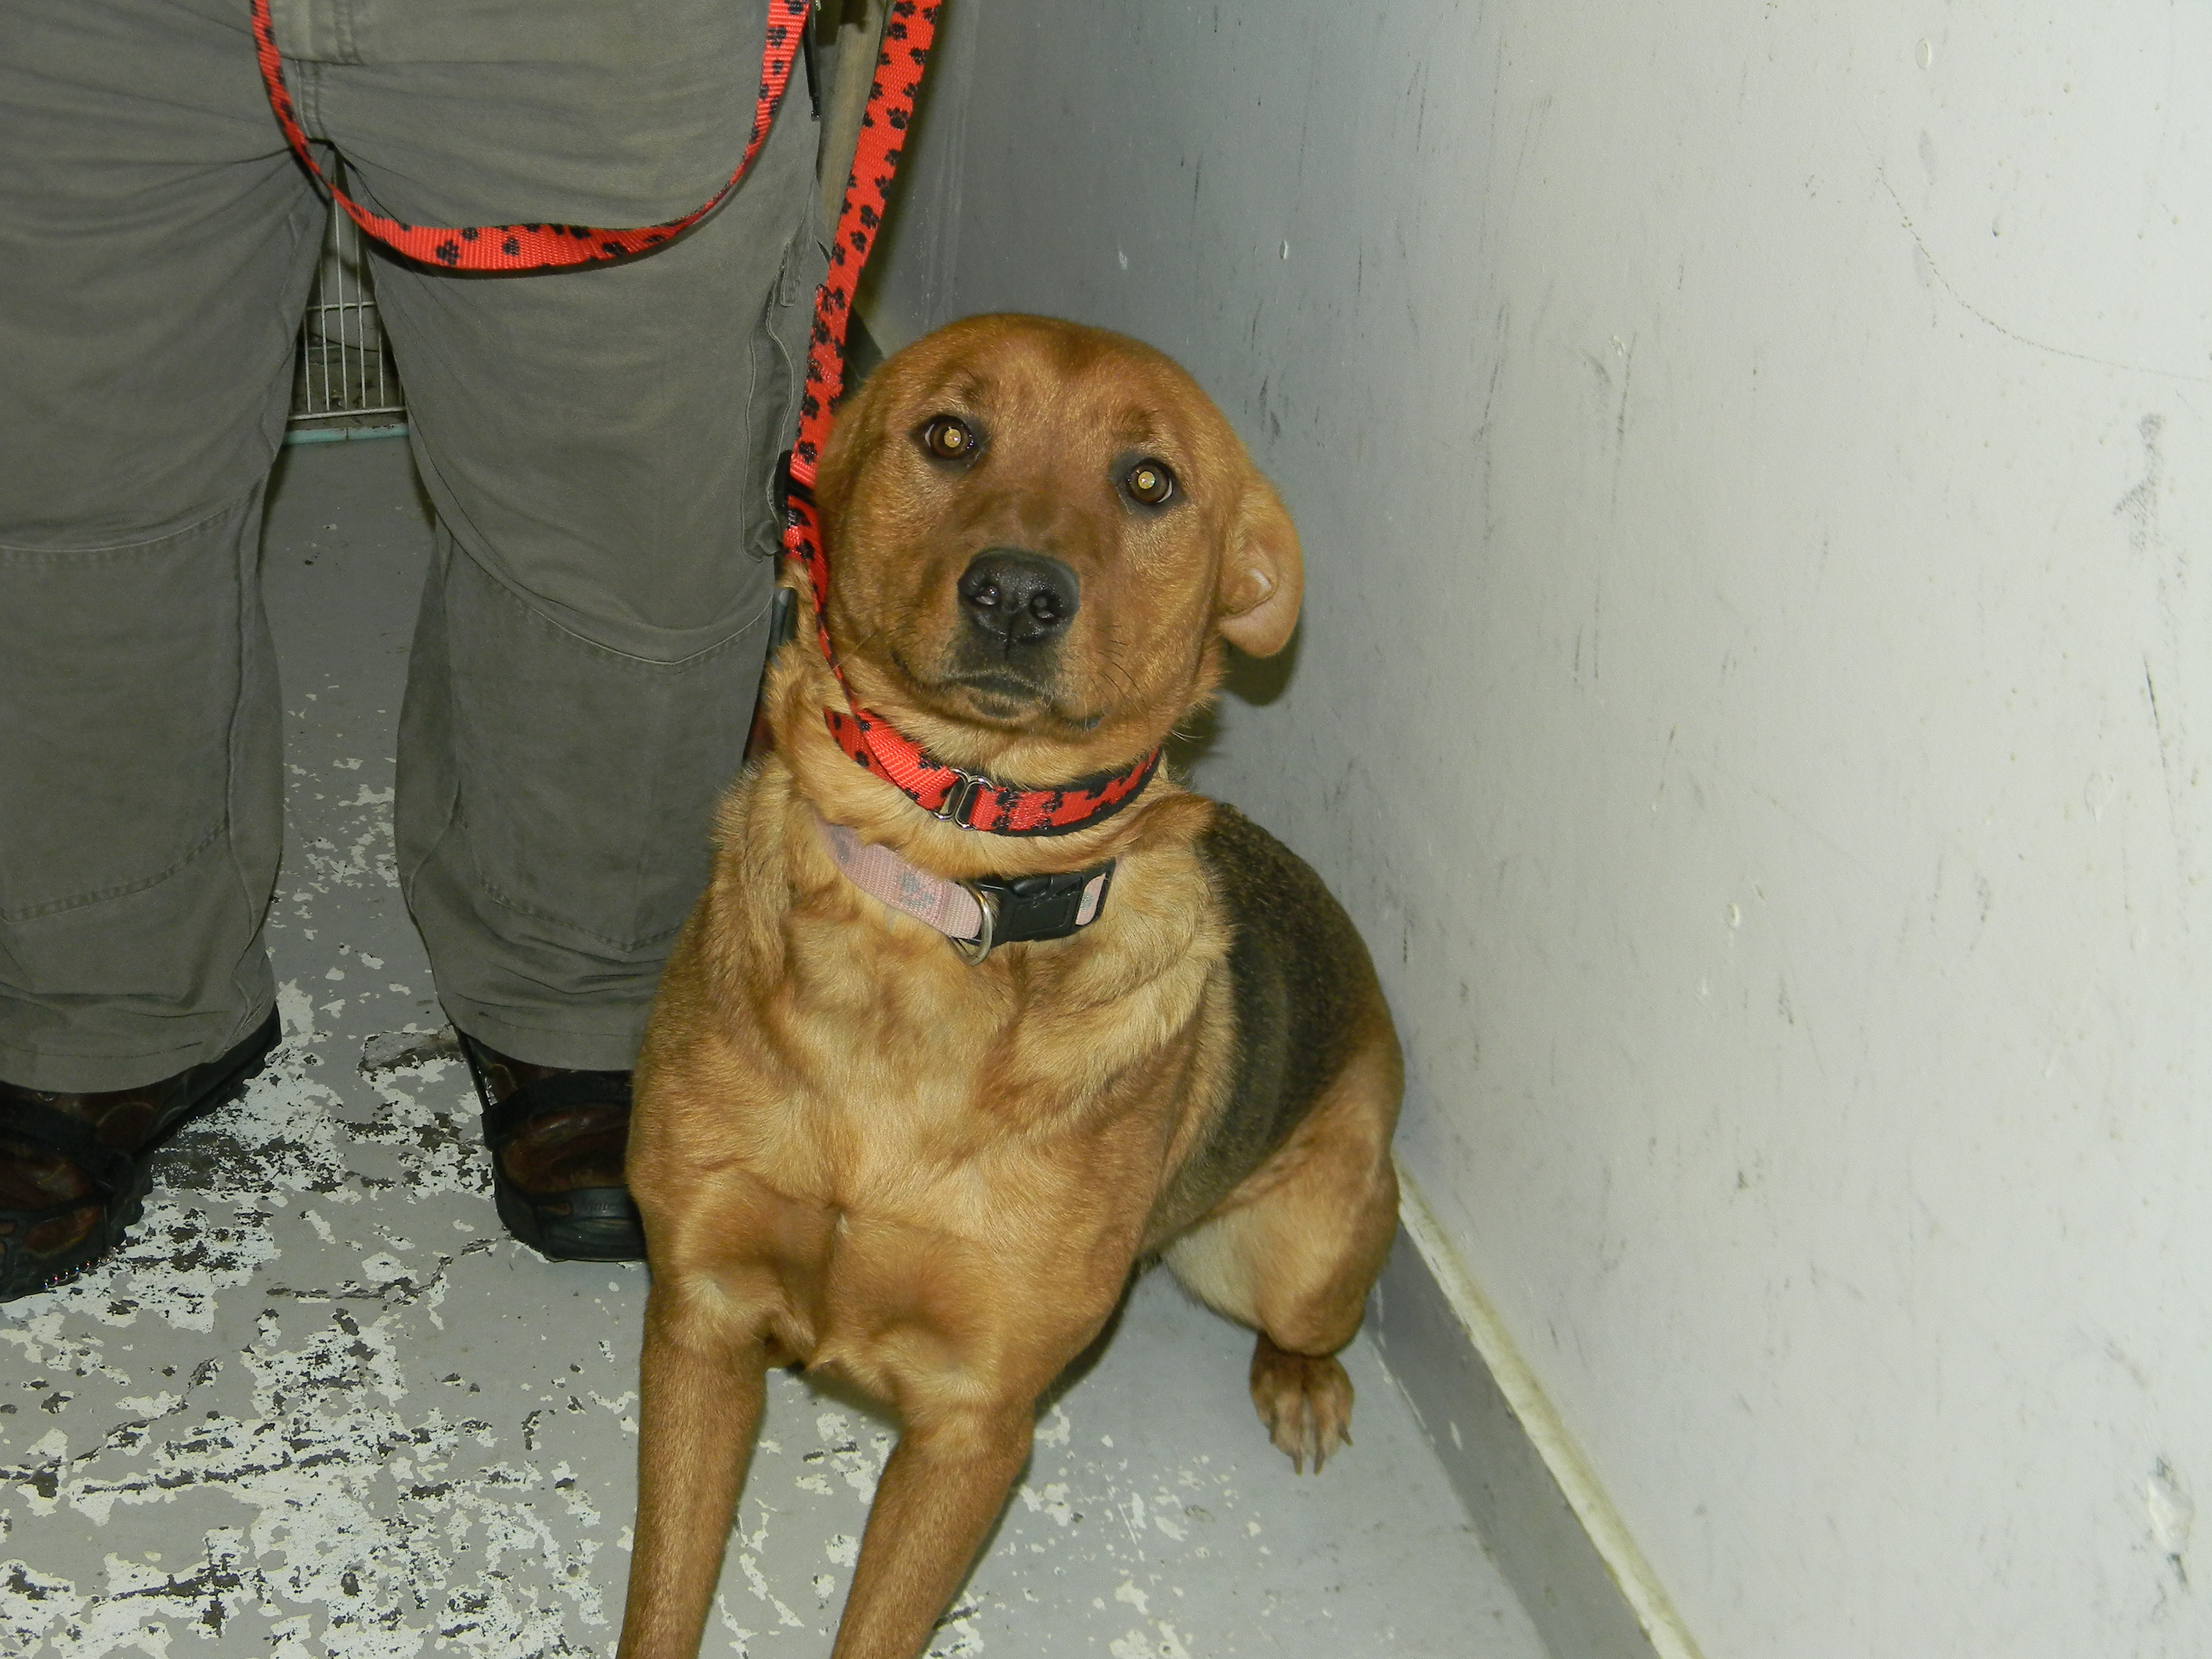 dog society dating Search for adoptable pets at shelters and rescues, and adopt your new dogs.